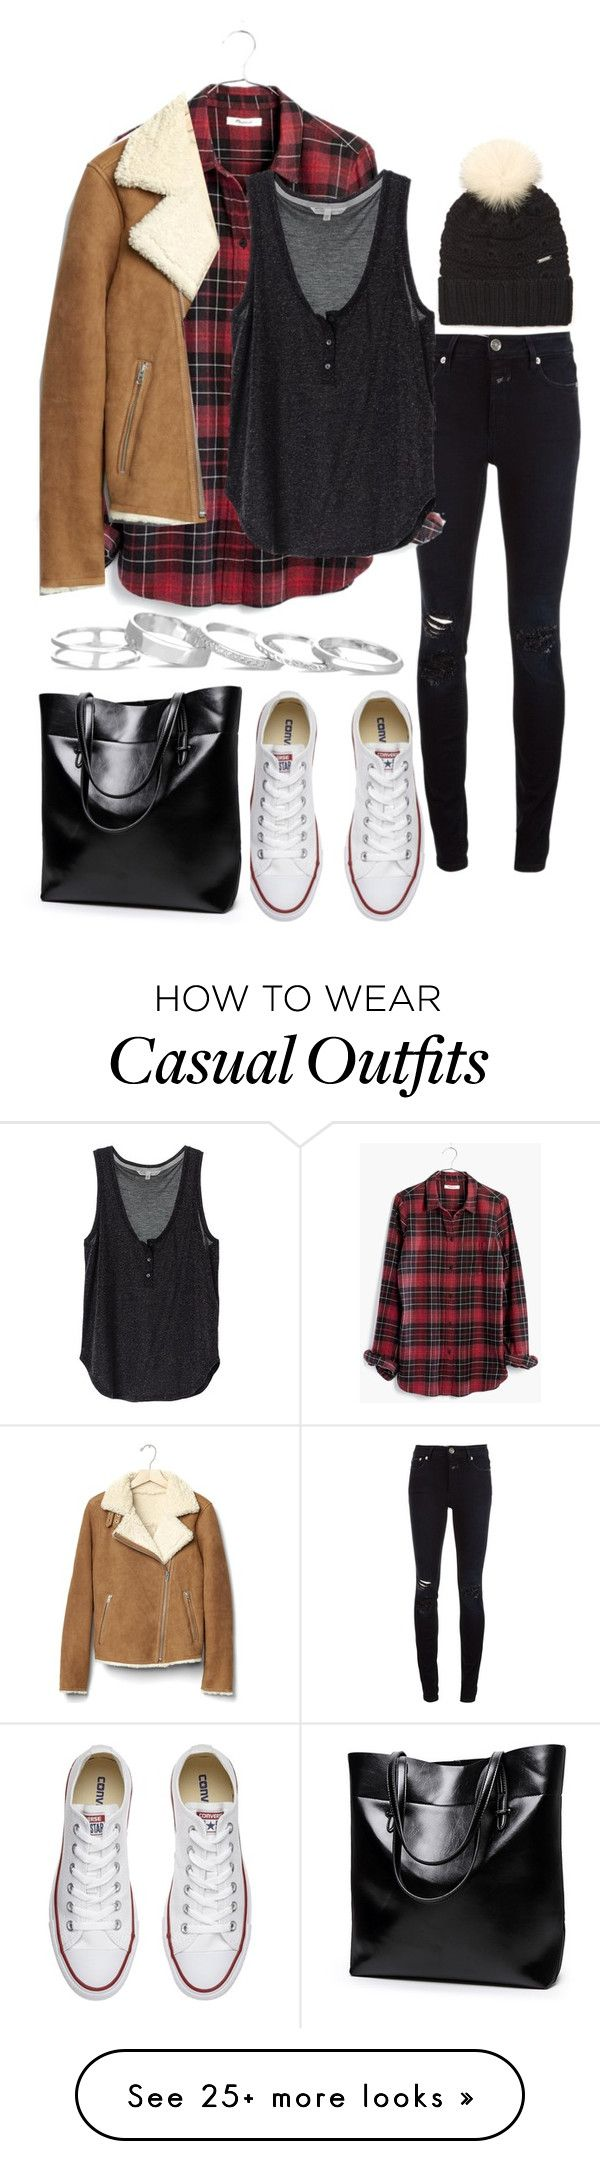 """Untitled #541"" by el-khawla on Polyvore featuring Closed, Madewell, Converse, Gap, Woolrich John Rich & Bros and Kendra Scott"